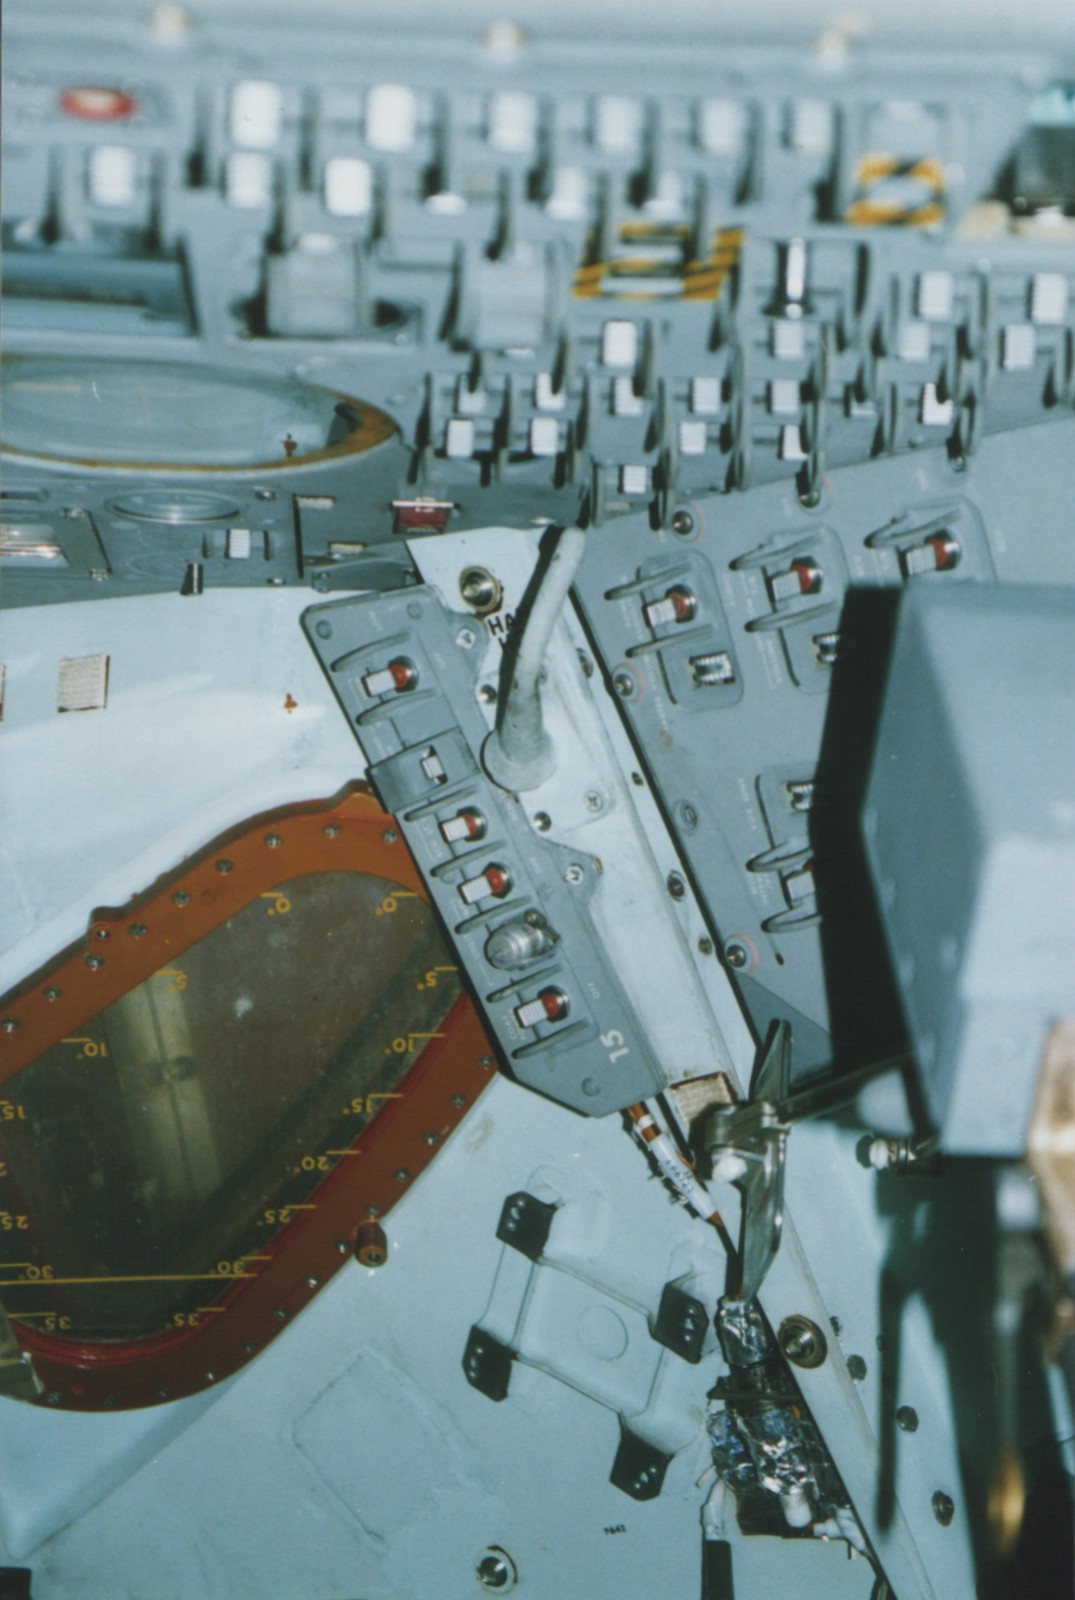 apollo capsule control panel - photo #39